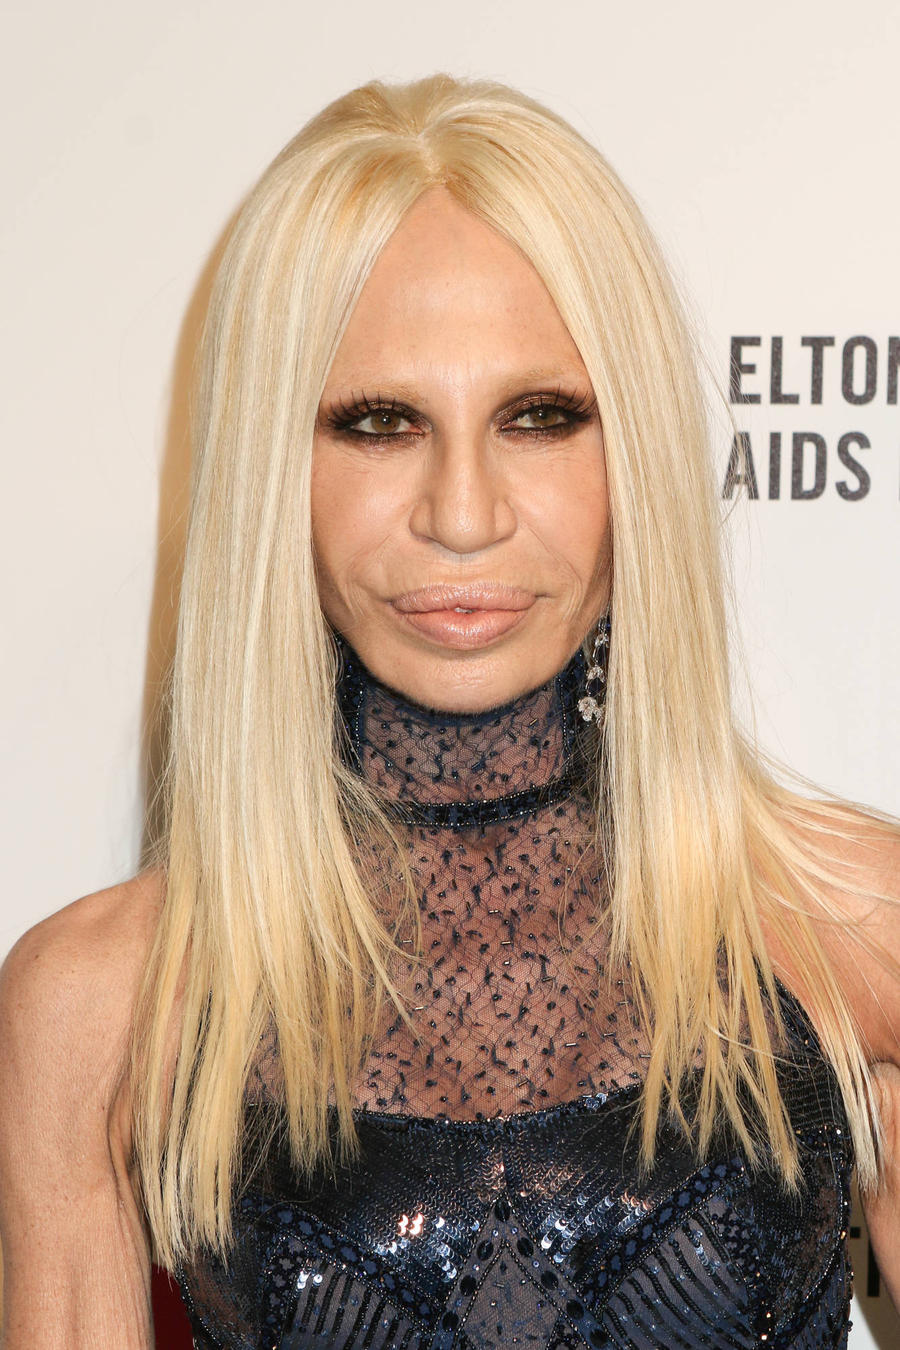 Donatella Versace: 'I Went Bold For Bruno's Super Bowl Look'